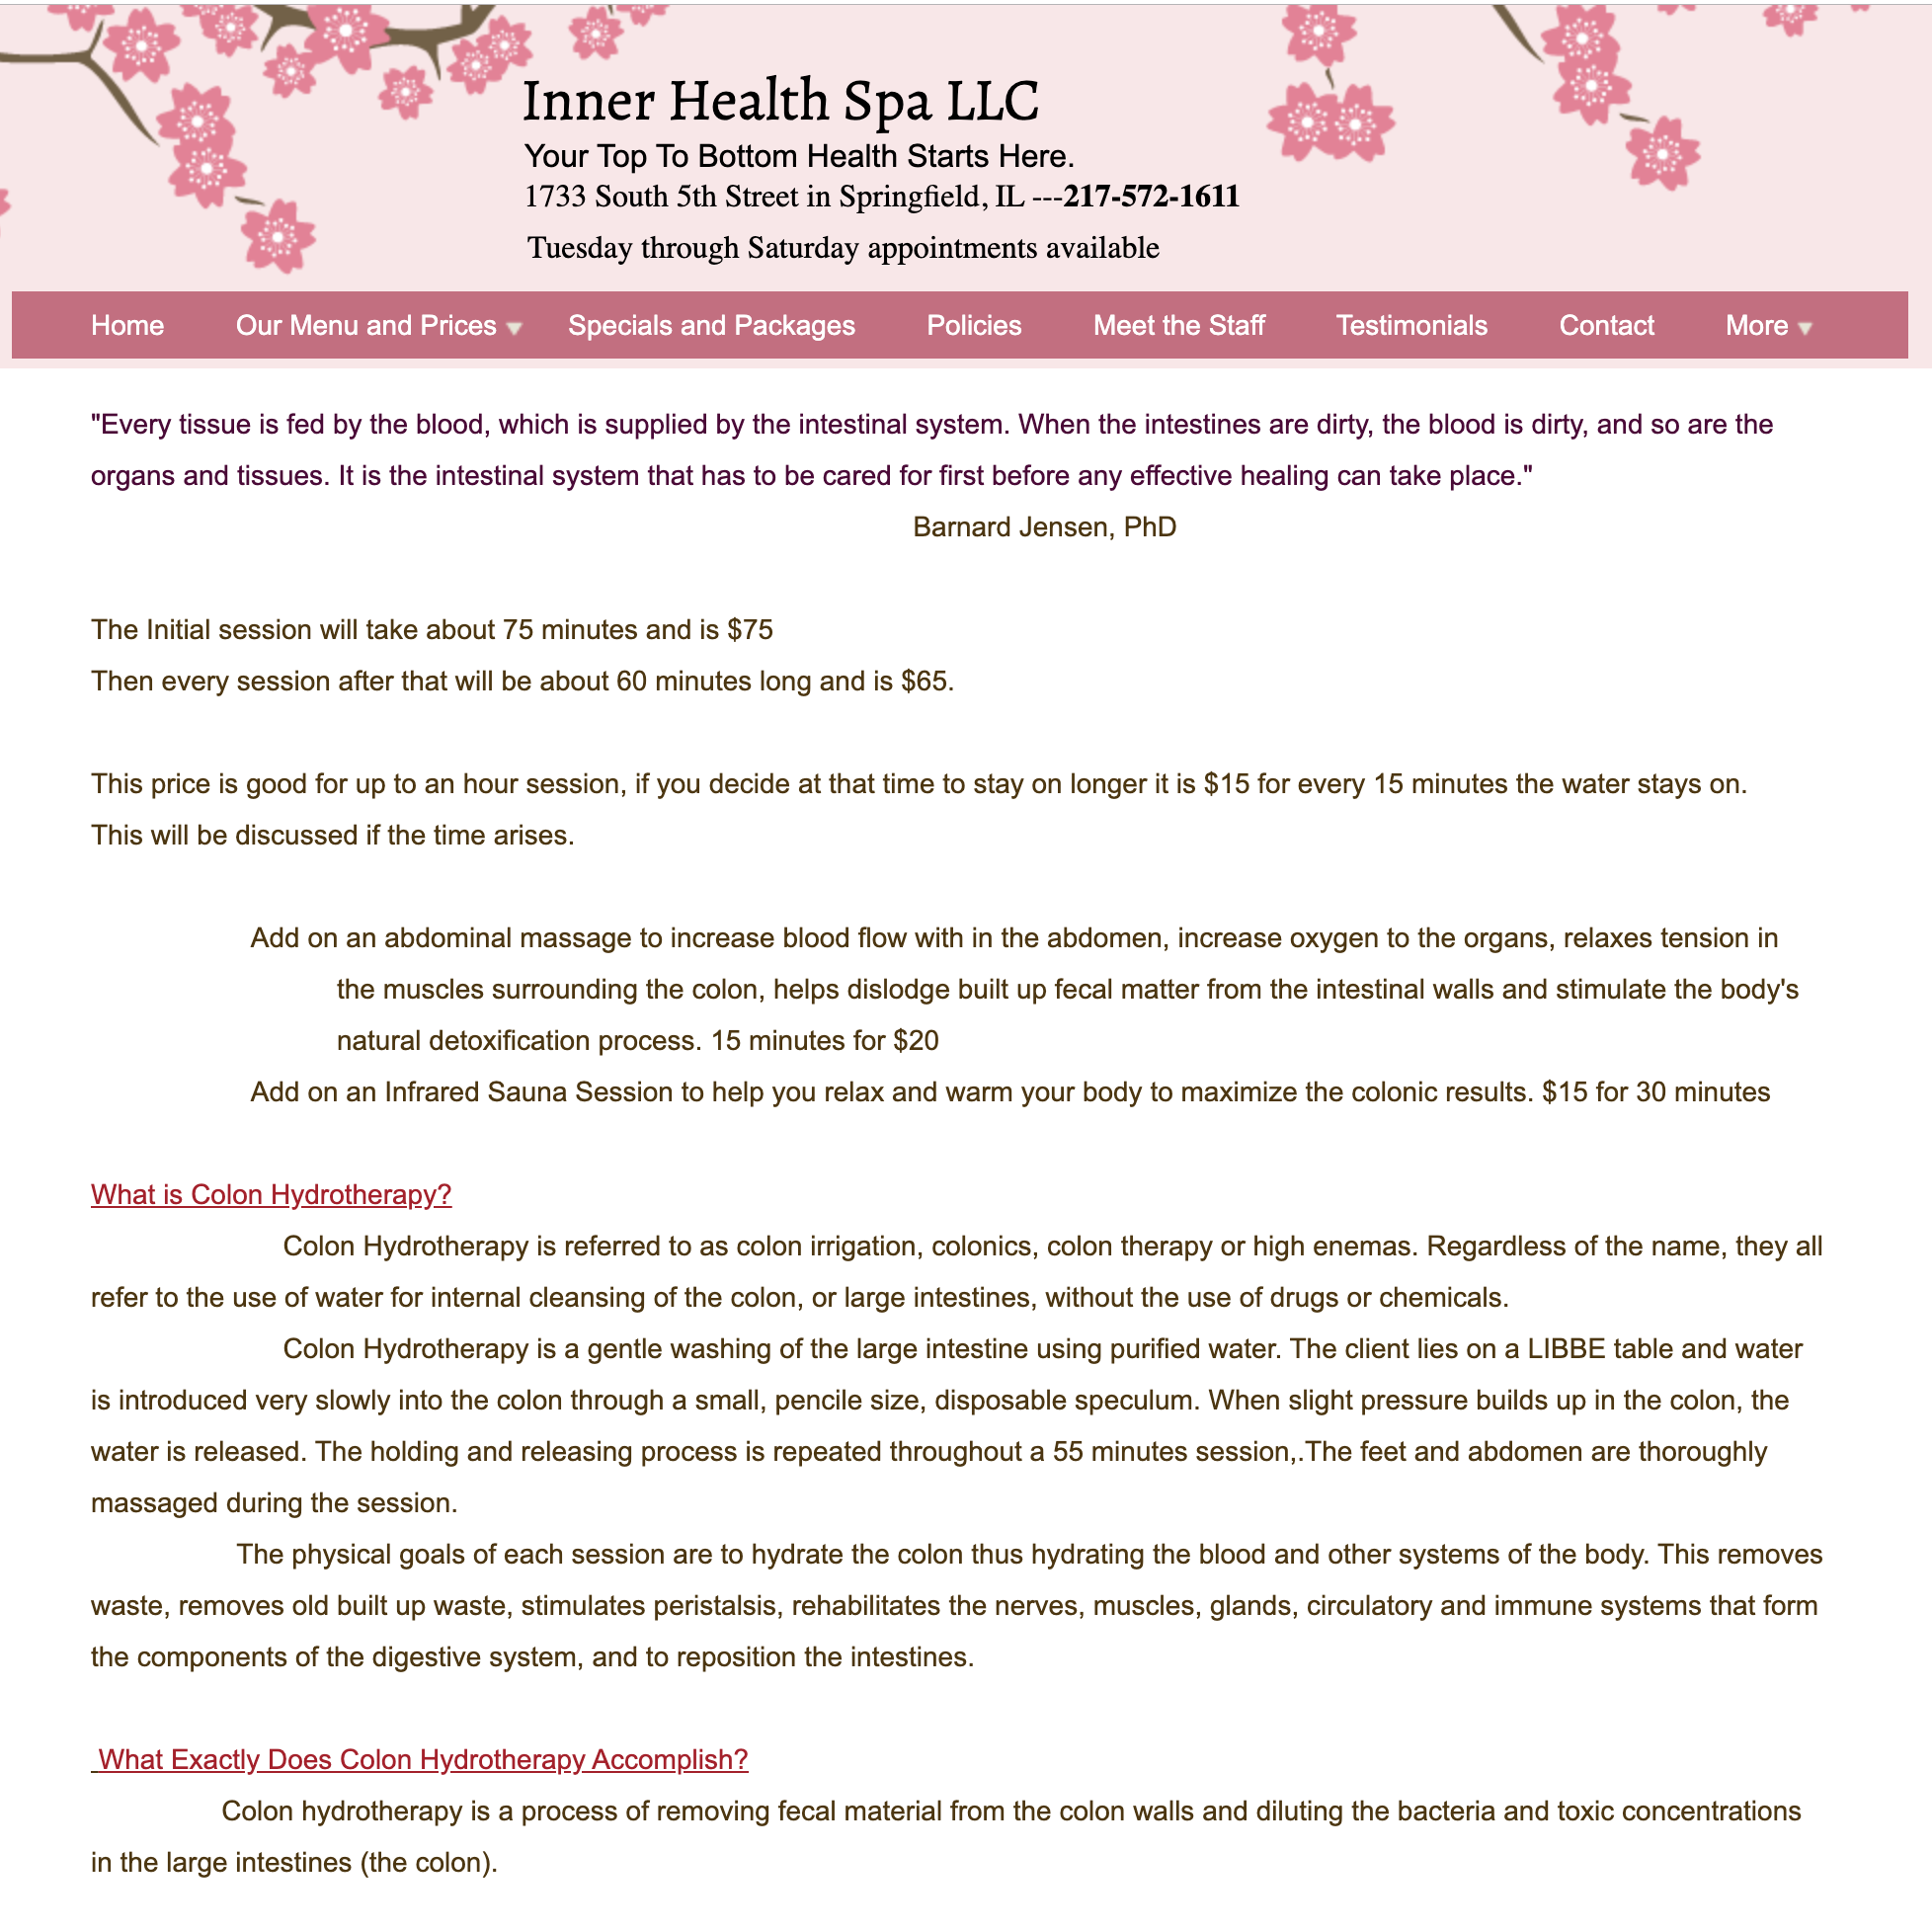 Inner Health Spa, LLC    Colon hydrotherapy is a process of removing fecal material from the colon walls and diluting the bacteria and toxic concentrations in the large intestines (the colon).